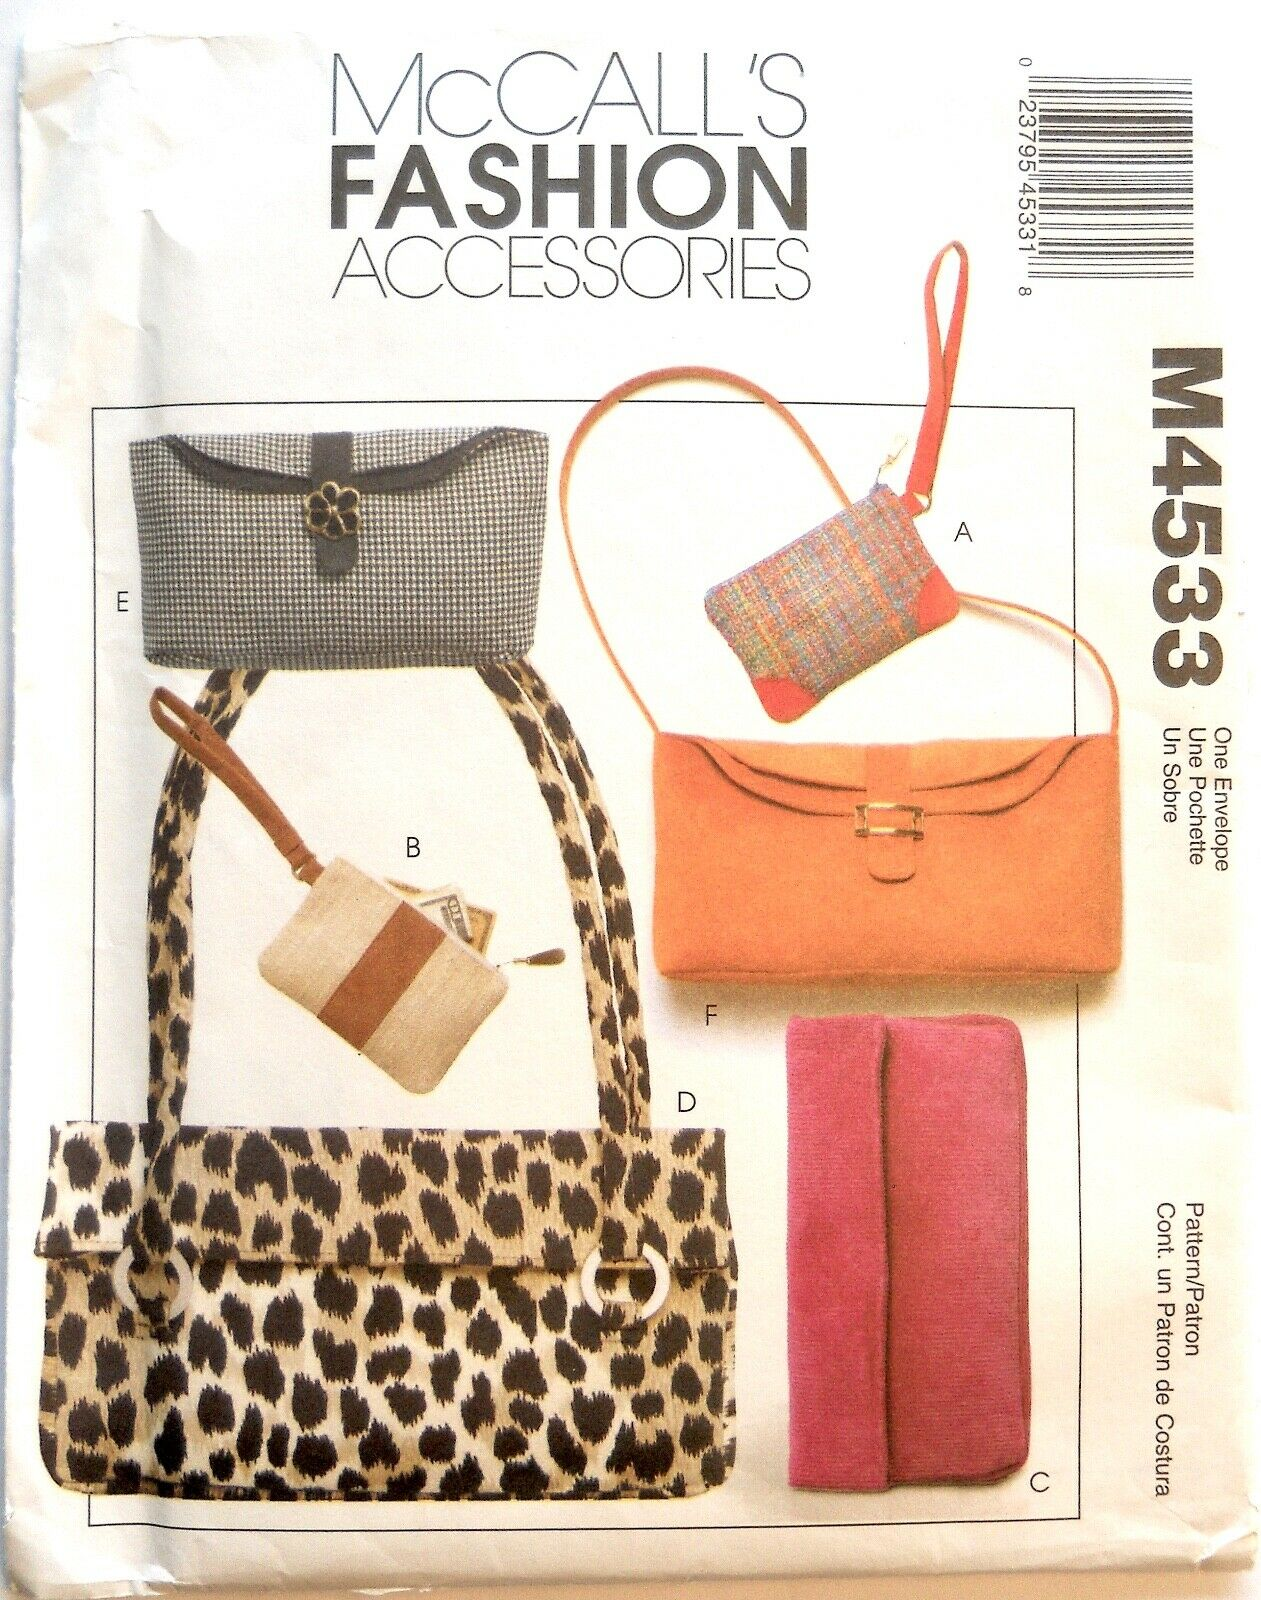 McCall's Fashion Accessories Handbag Purses Pattern M4533 COMPLETE and UNCUT